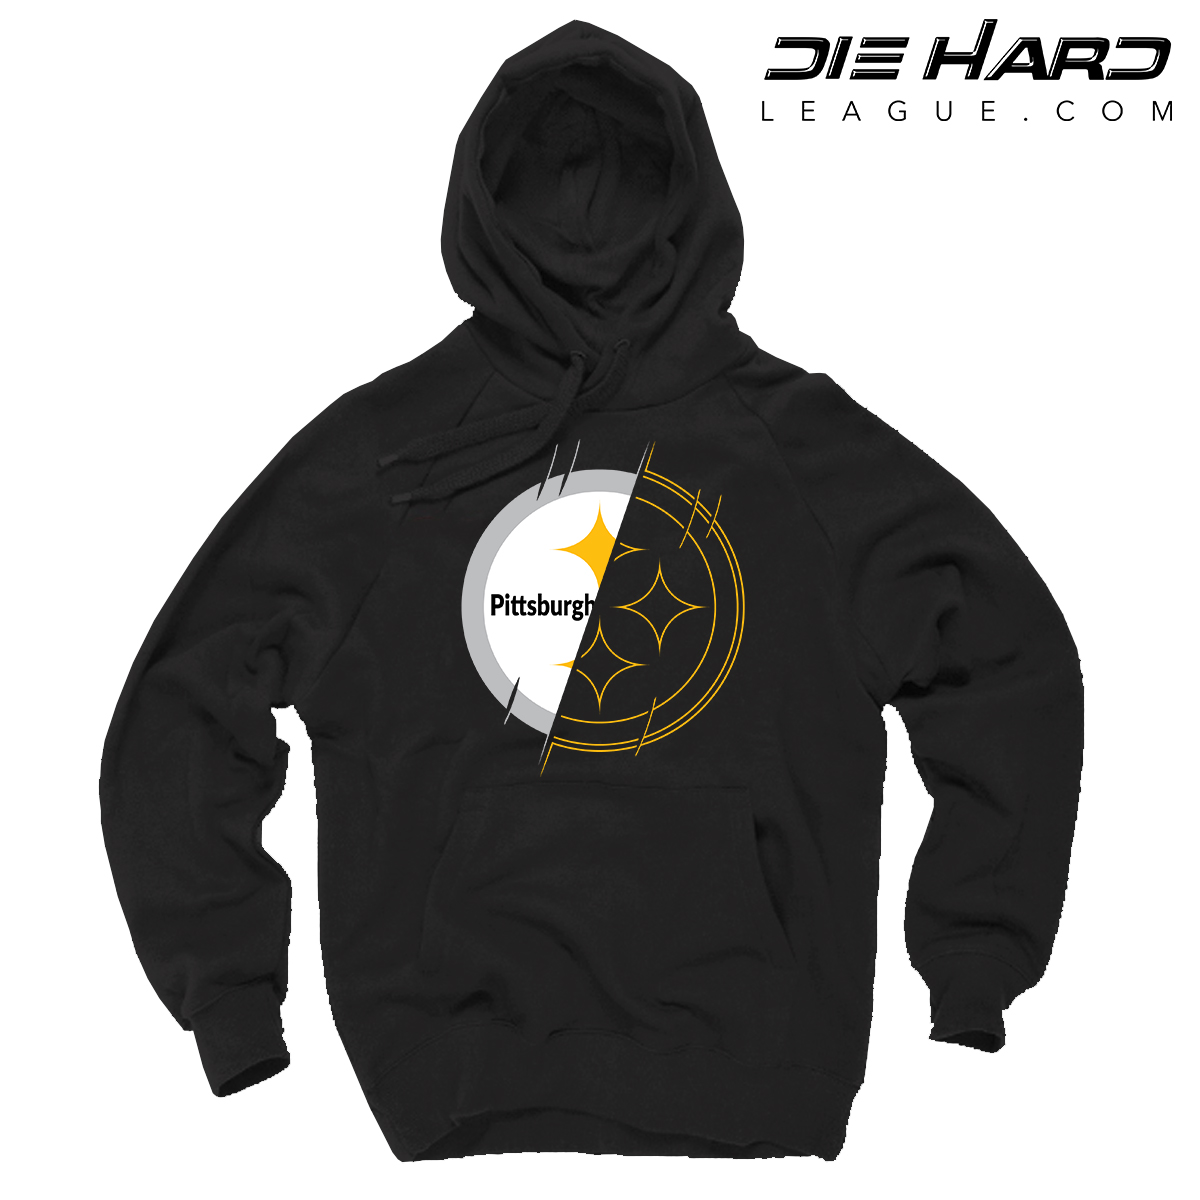 info for 42d3d 4332a Steelers Hoodie - Pittsburgh Hoodie 2 Tone Black